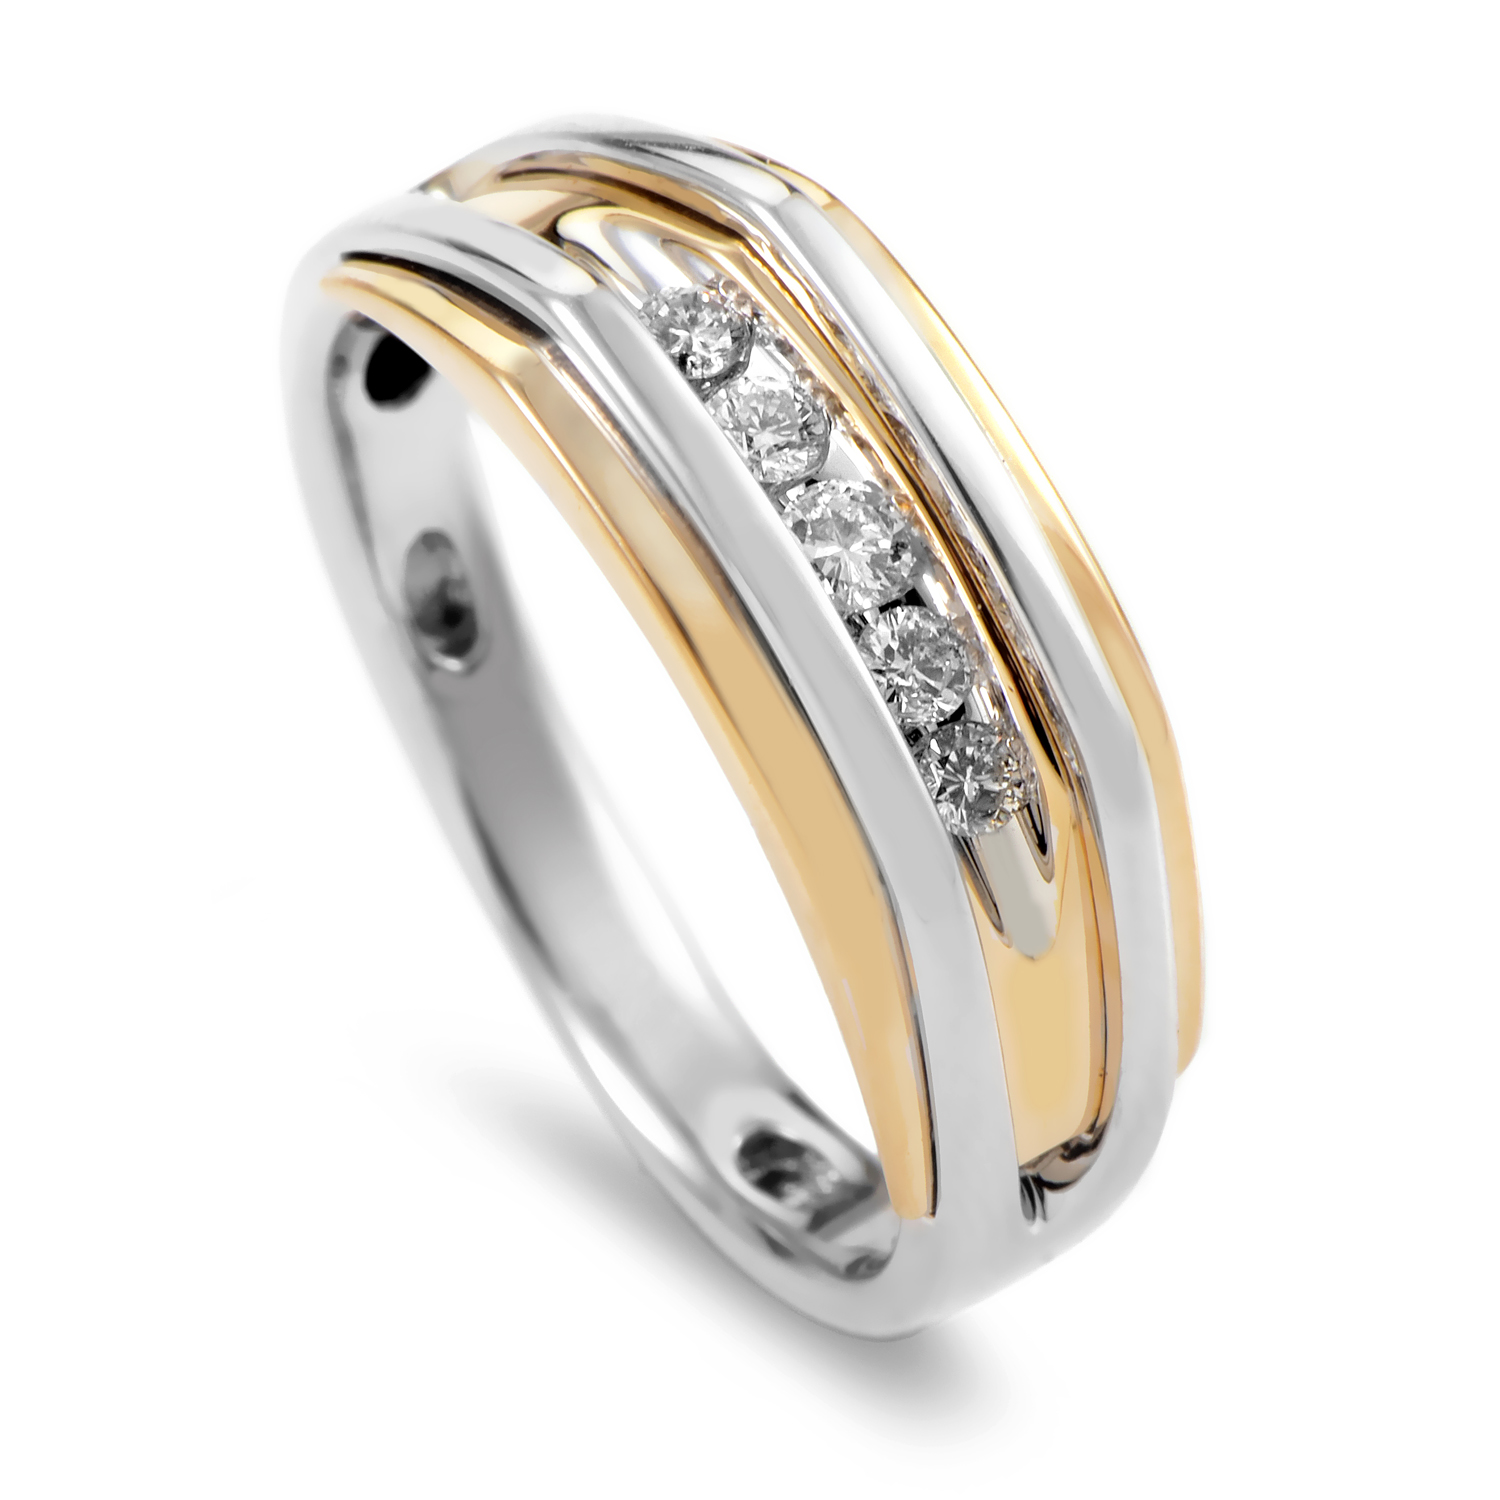 14K Multi-Tone Gold & Diamond Band Ring 63527XGW4X1